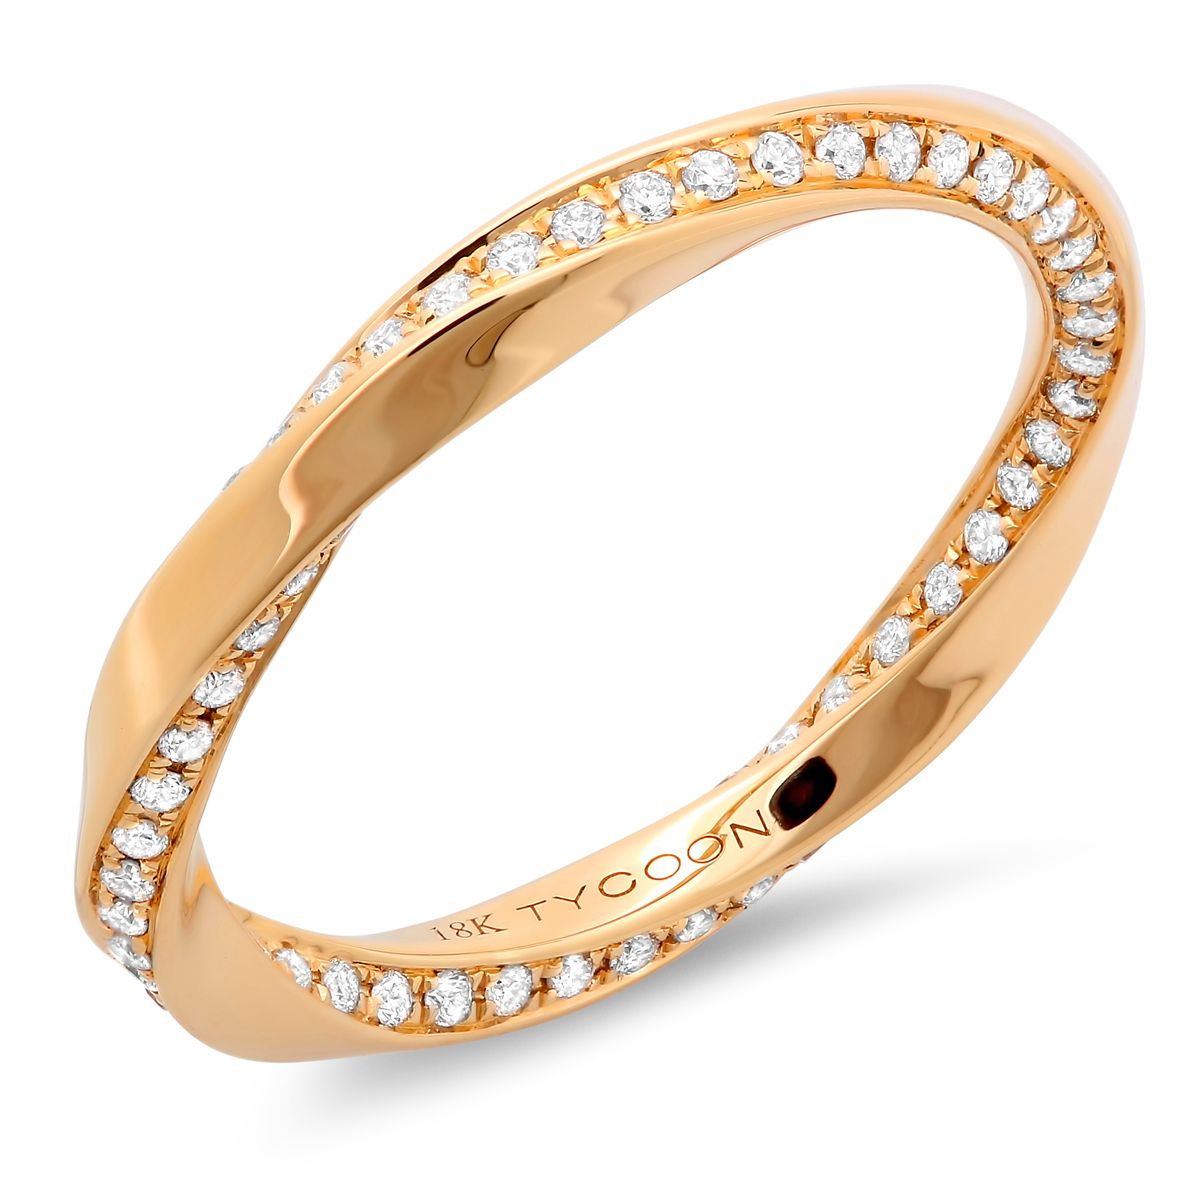 An interesting take on a simple gold band My Dream Wedding